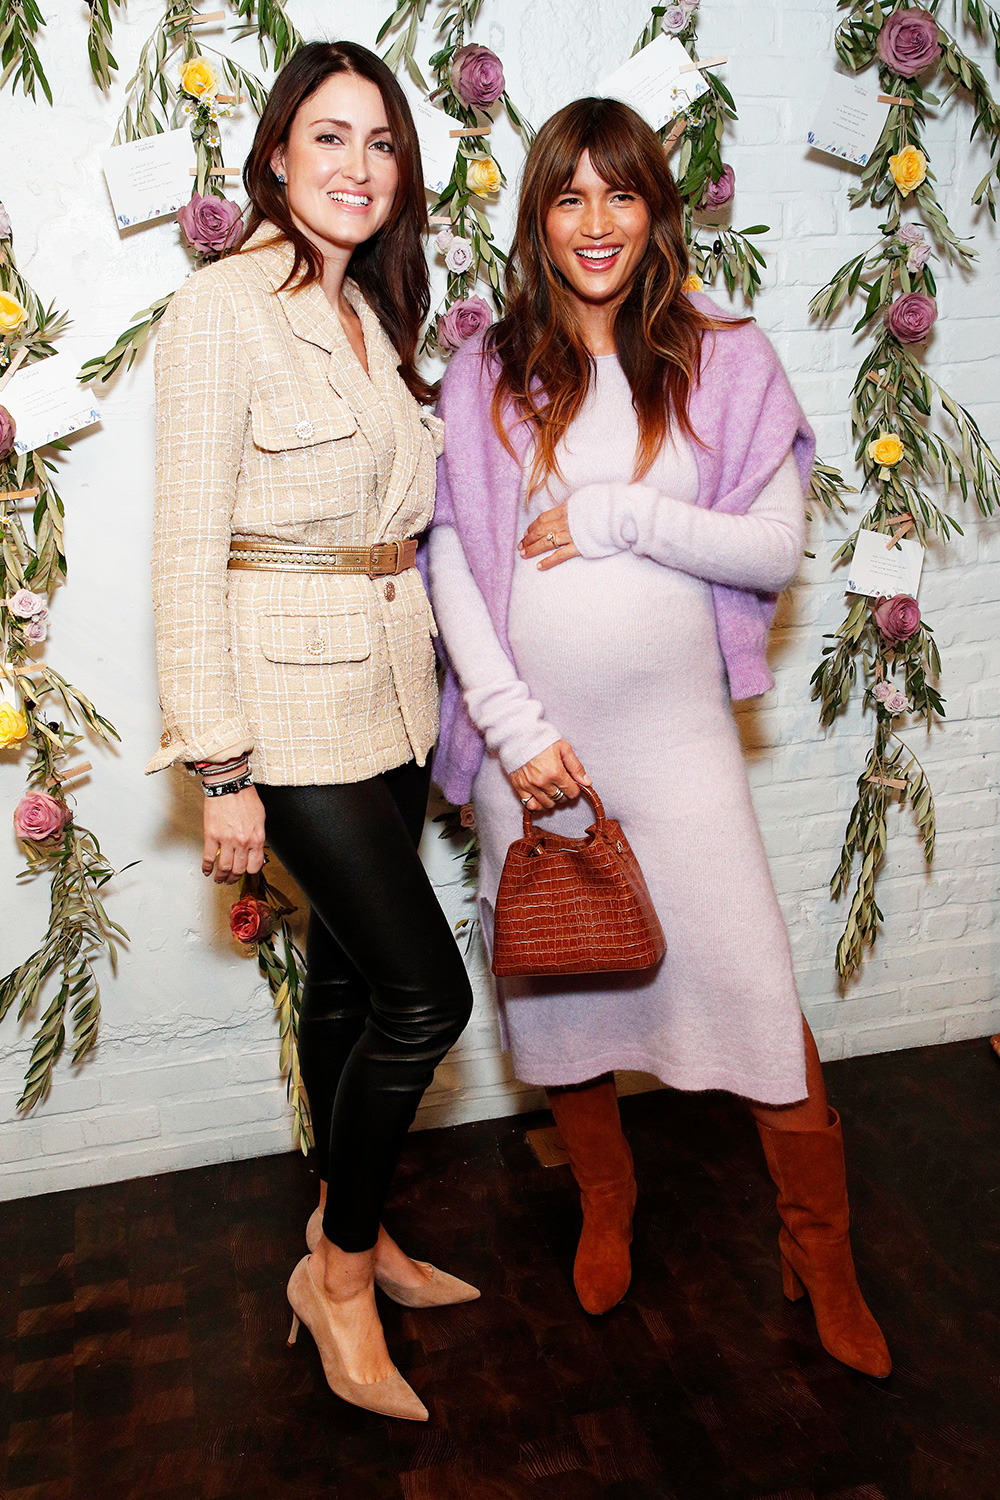 Agatha Luczo and Rocky Barnes attend the Bambini Furtuna Launch Brunch at The Little Owl Townhouse on January 14, 2020 in New York City